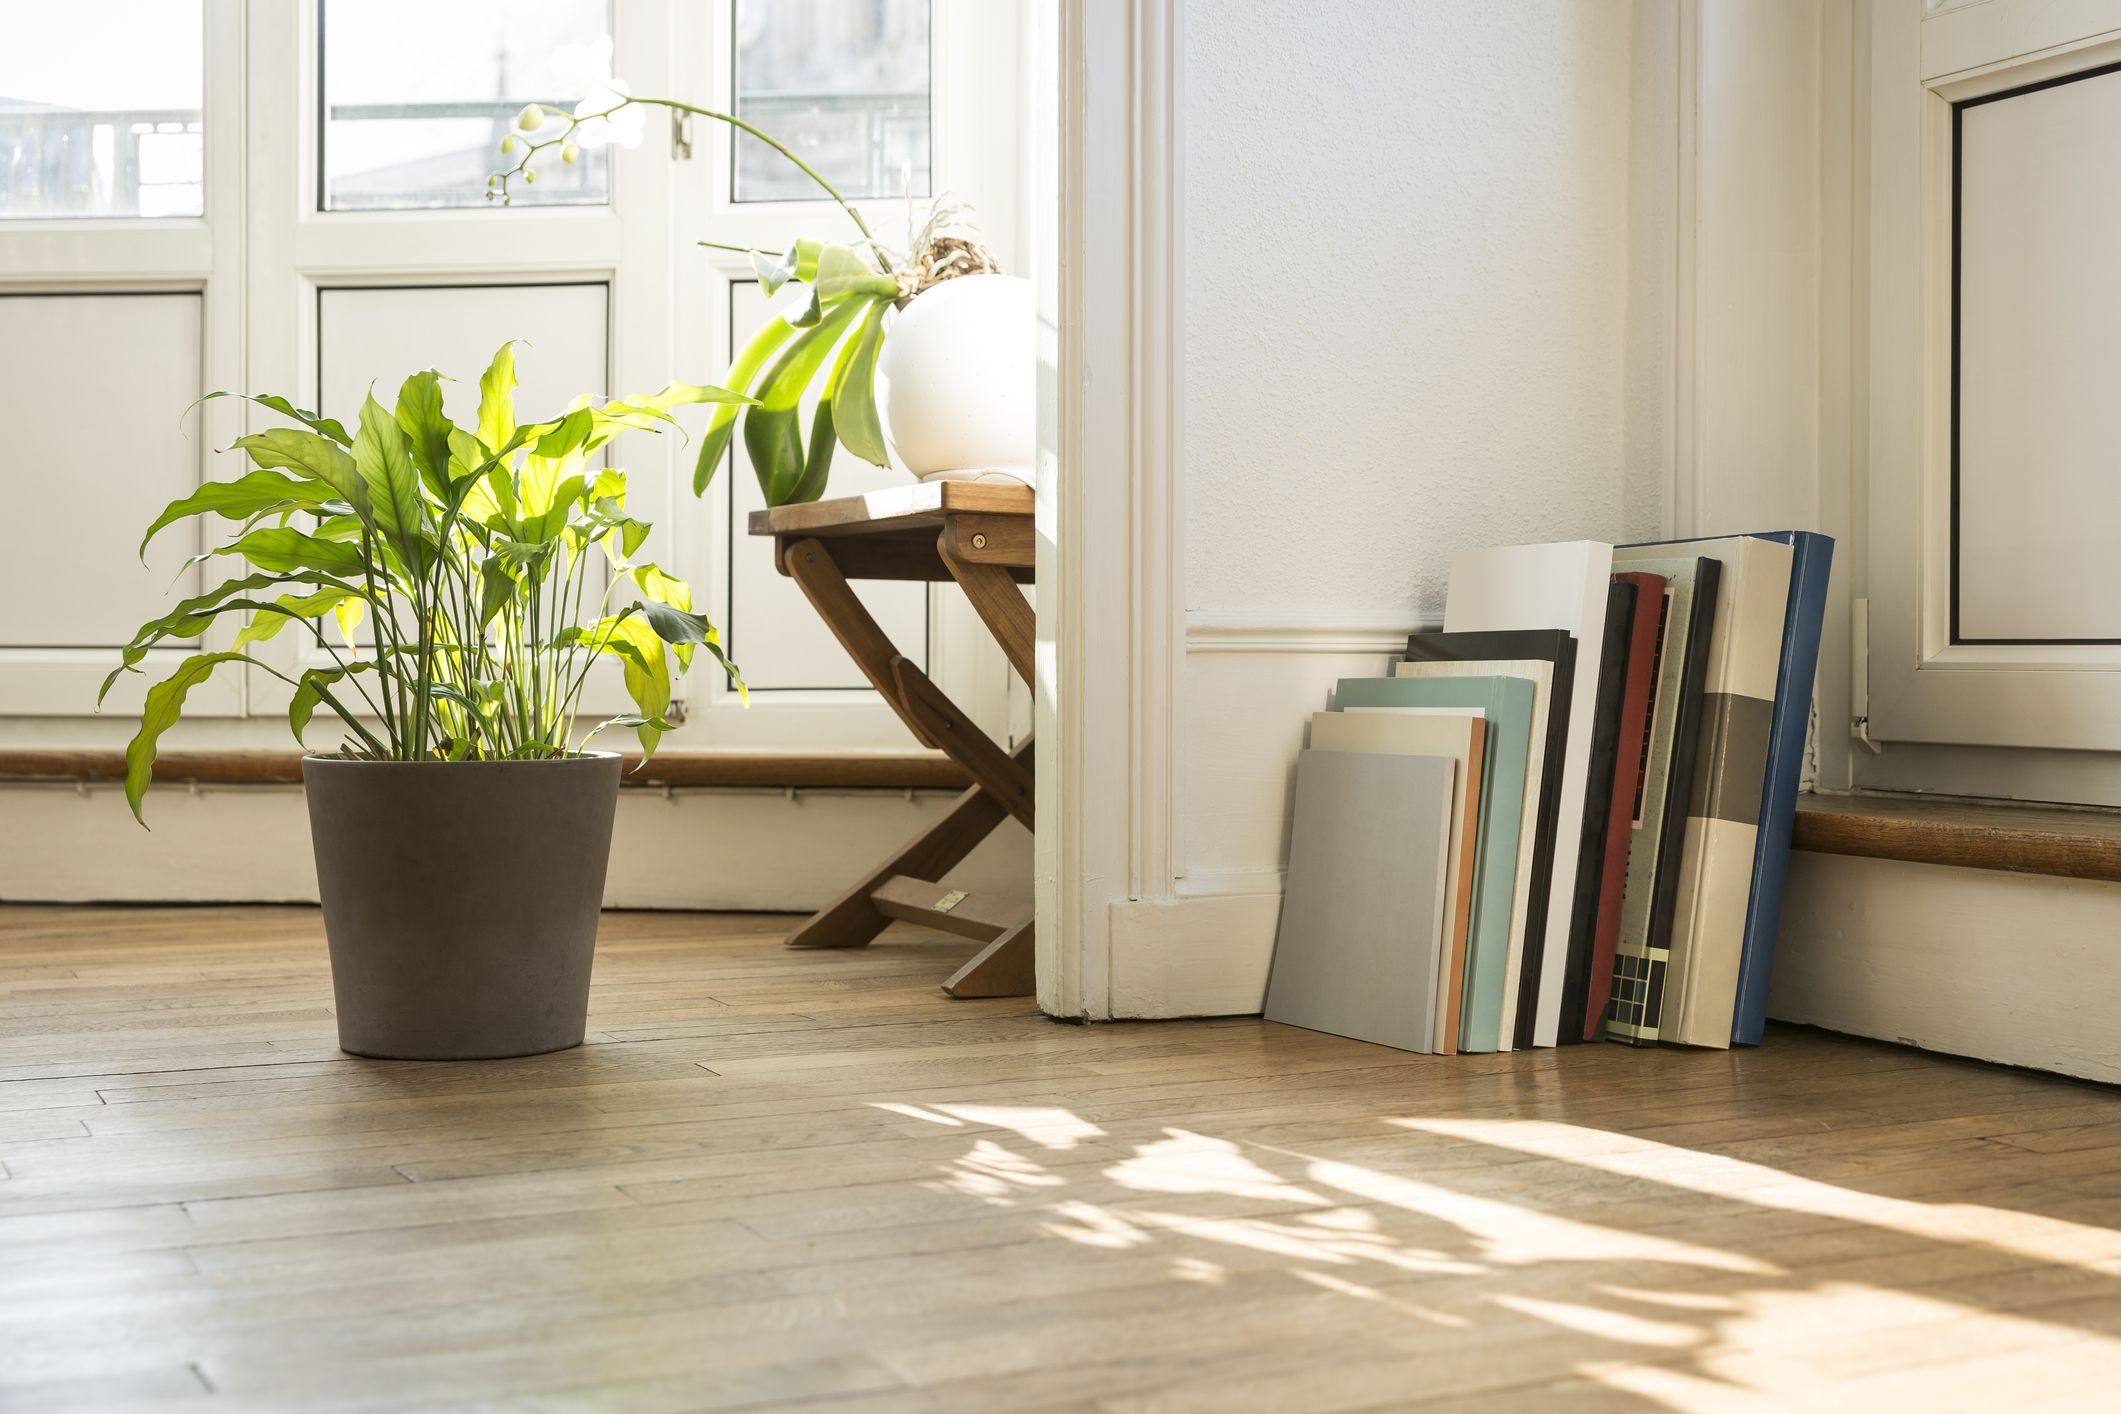 12 Low-Light Houseplants That Can Survive In Even The Darkest Corner